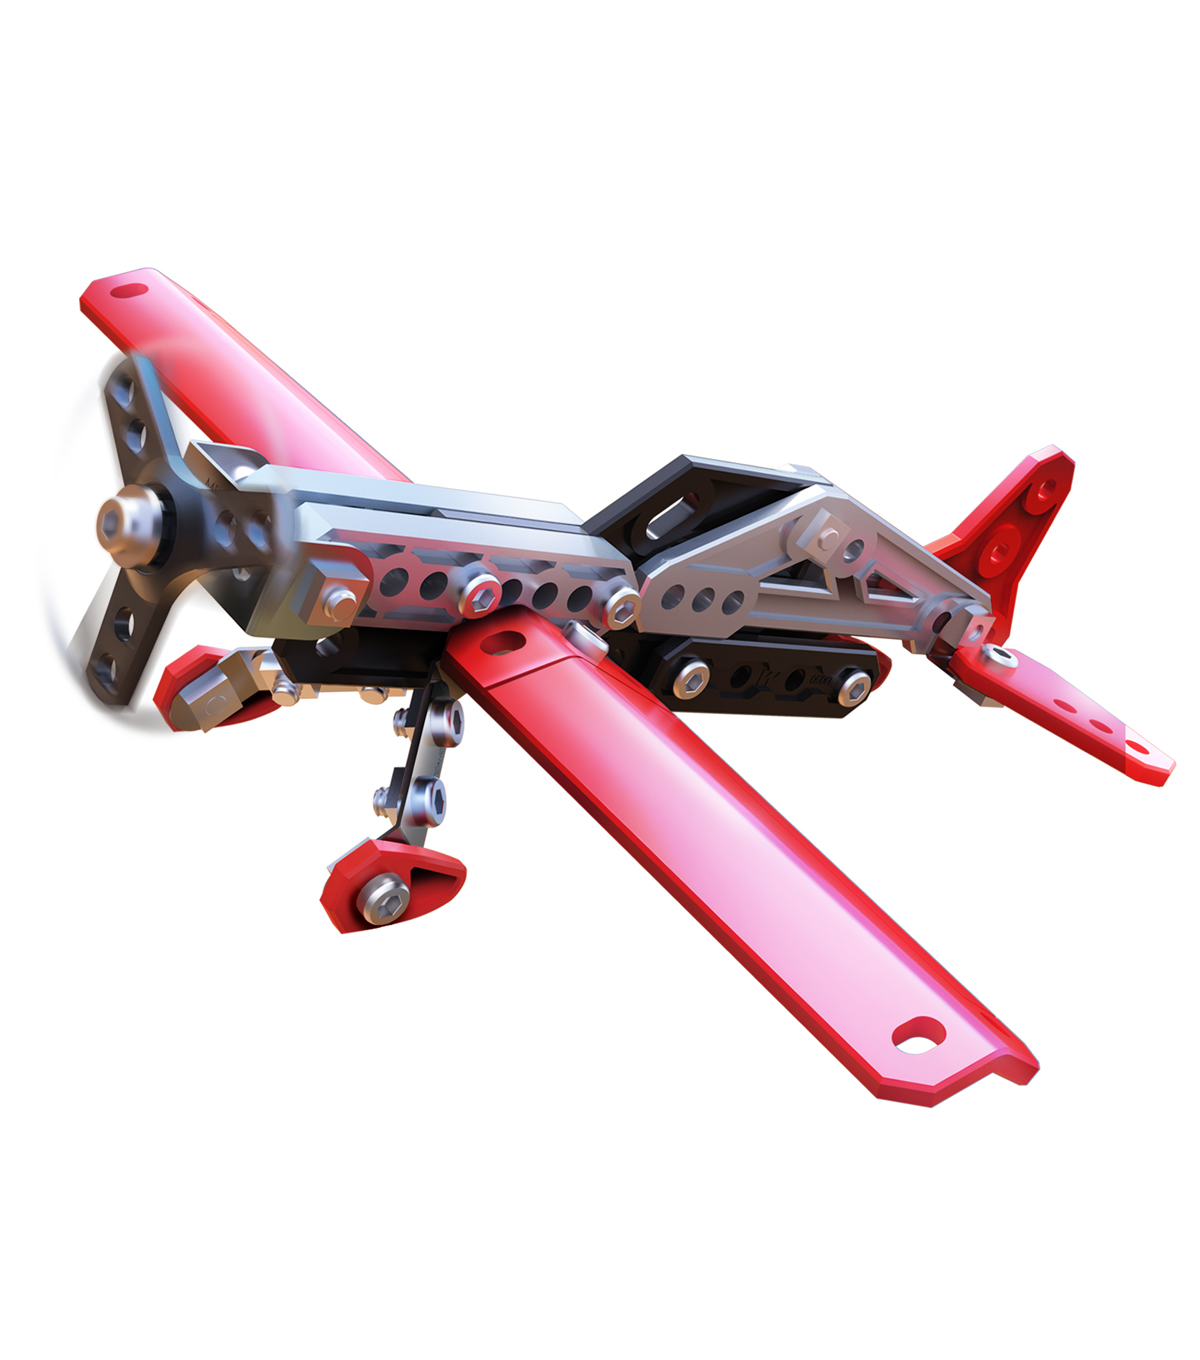 Meccano 3 Models Set 2 In 1 Plane